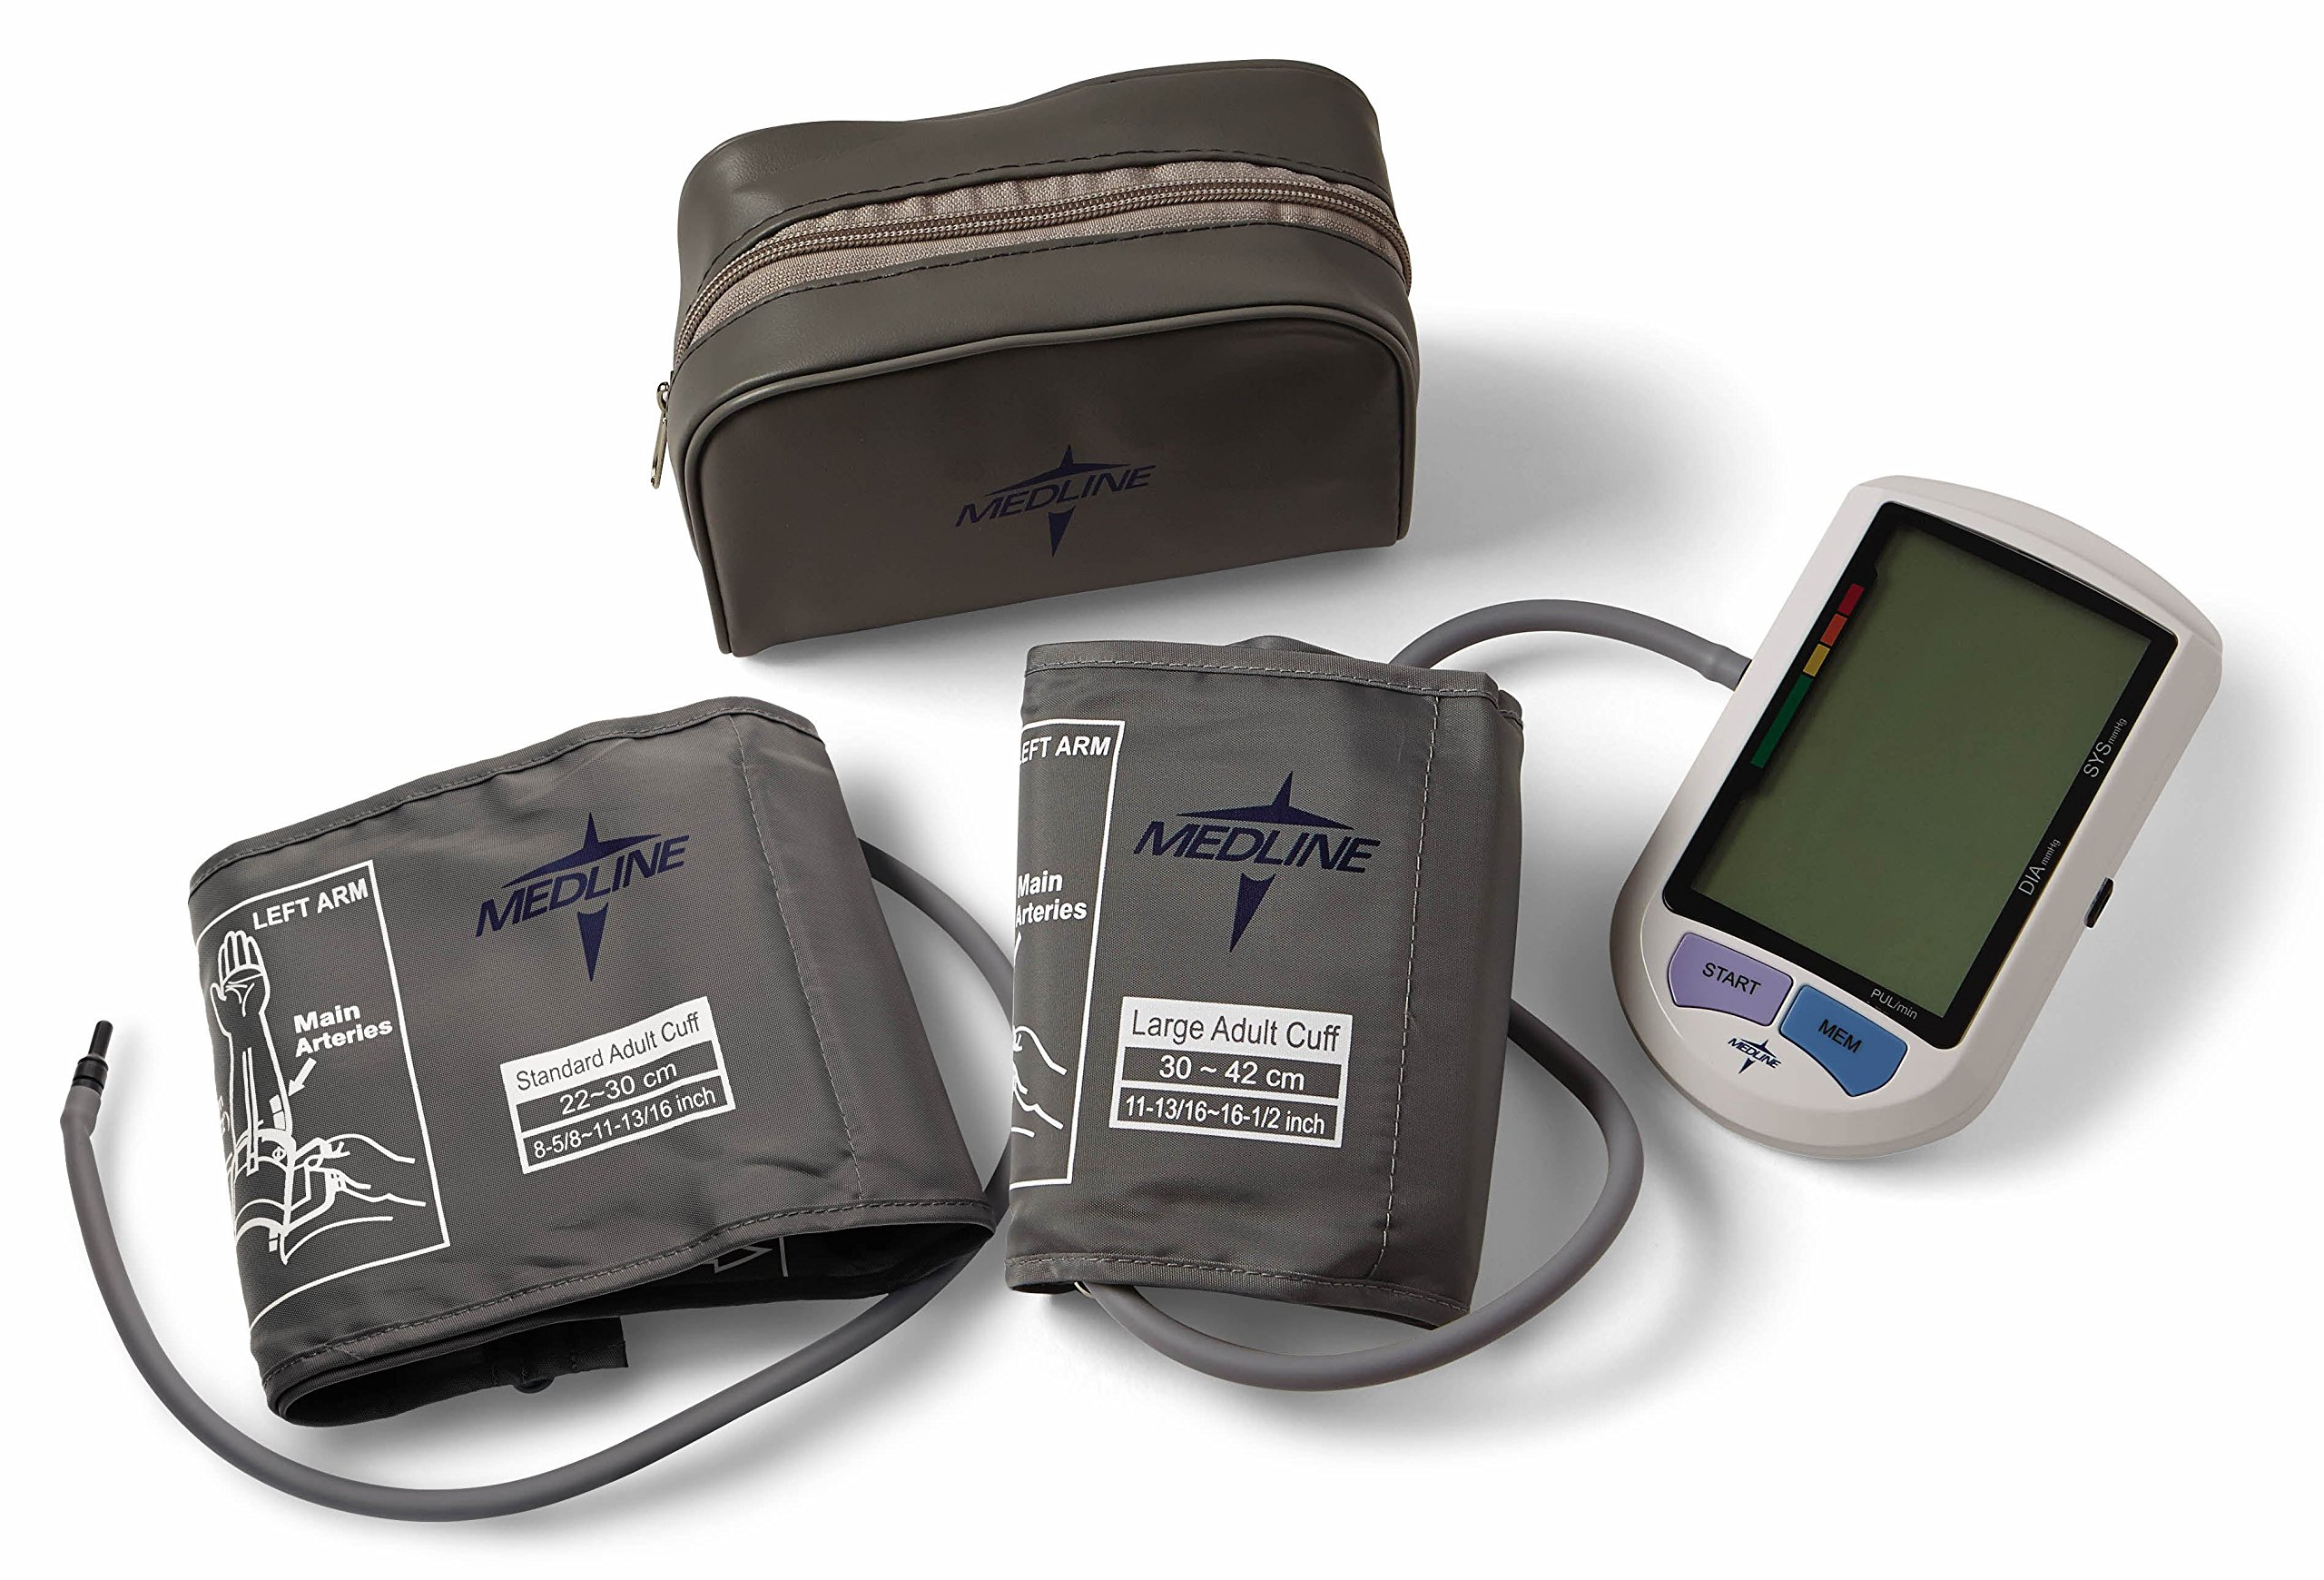 Medline Elite Automatic Digital Blood Pressure Monitor, Adult and Large Adult Cuff Included